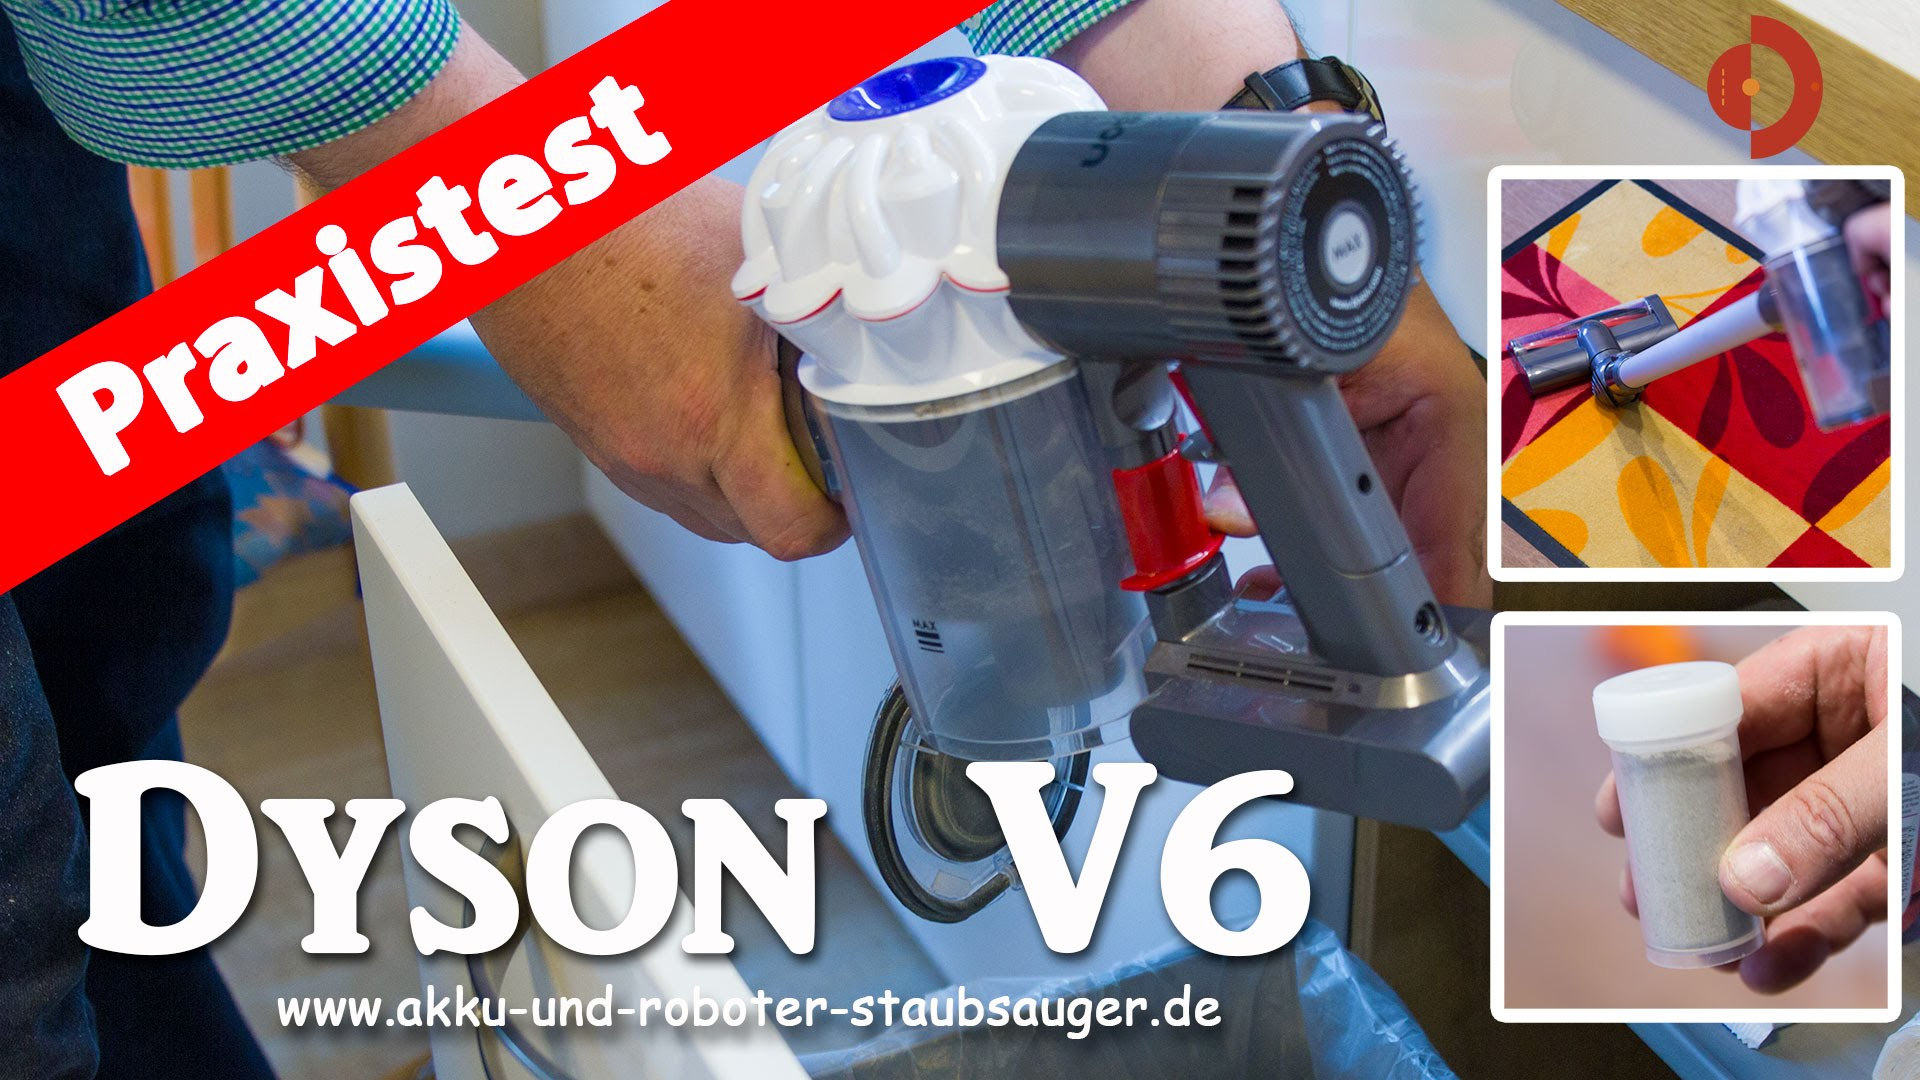 dyson v6 der neue akku staubsauger im test. Black Bedroom Furniture Sets. Home Design Ideas